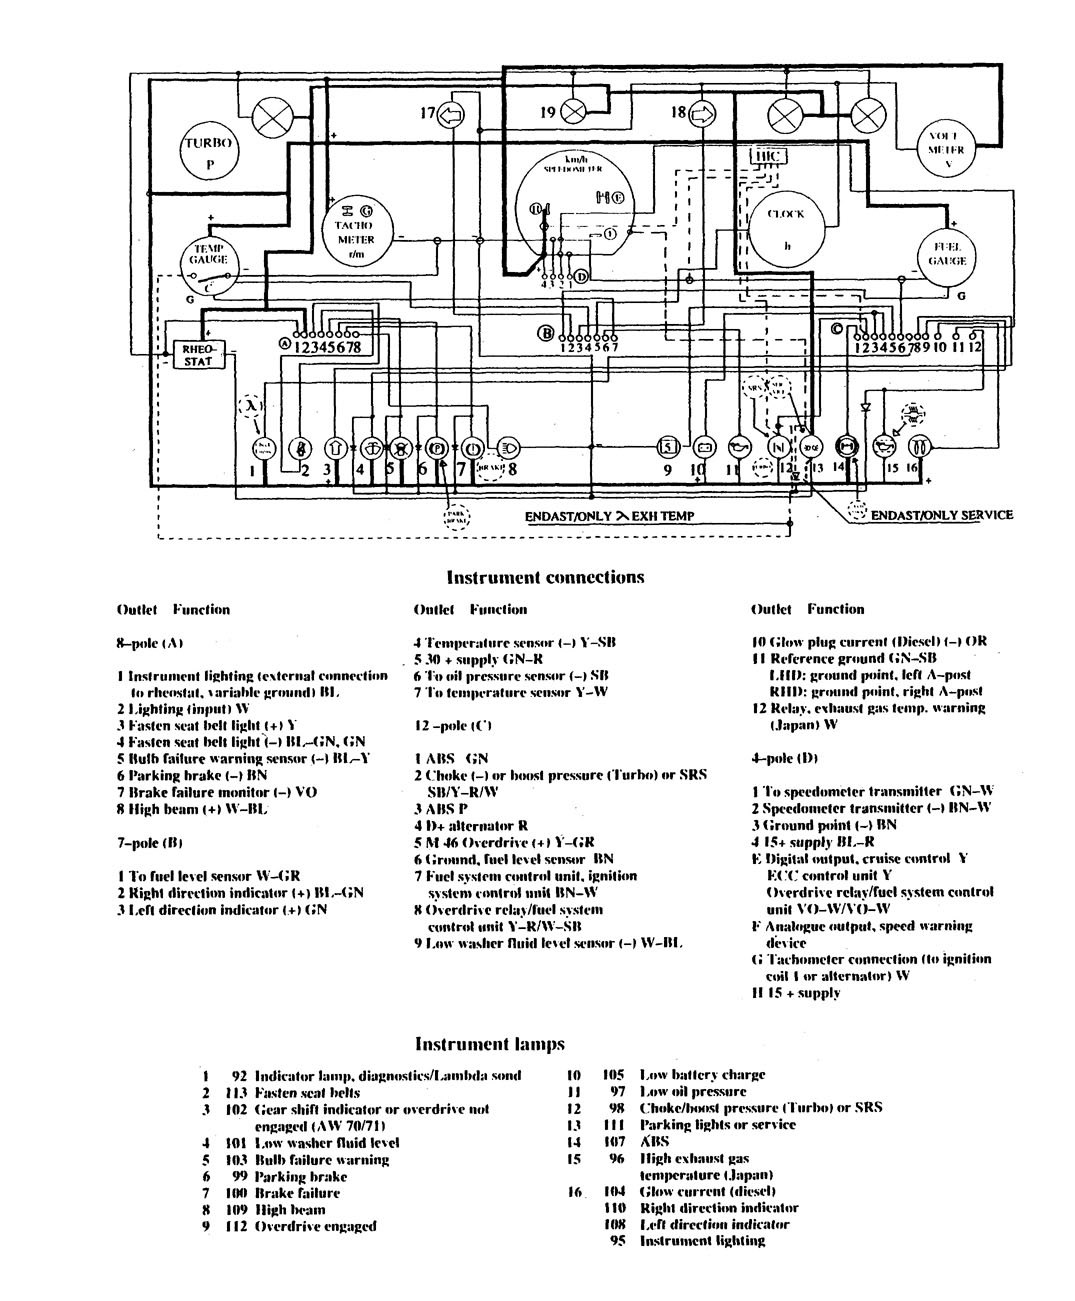 Volvo 740 Fuse Diagram Great Design Of Wiring 1990 Gle Wagon Engine 1998 S90 Box Mazda B3000 940